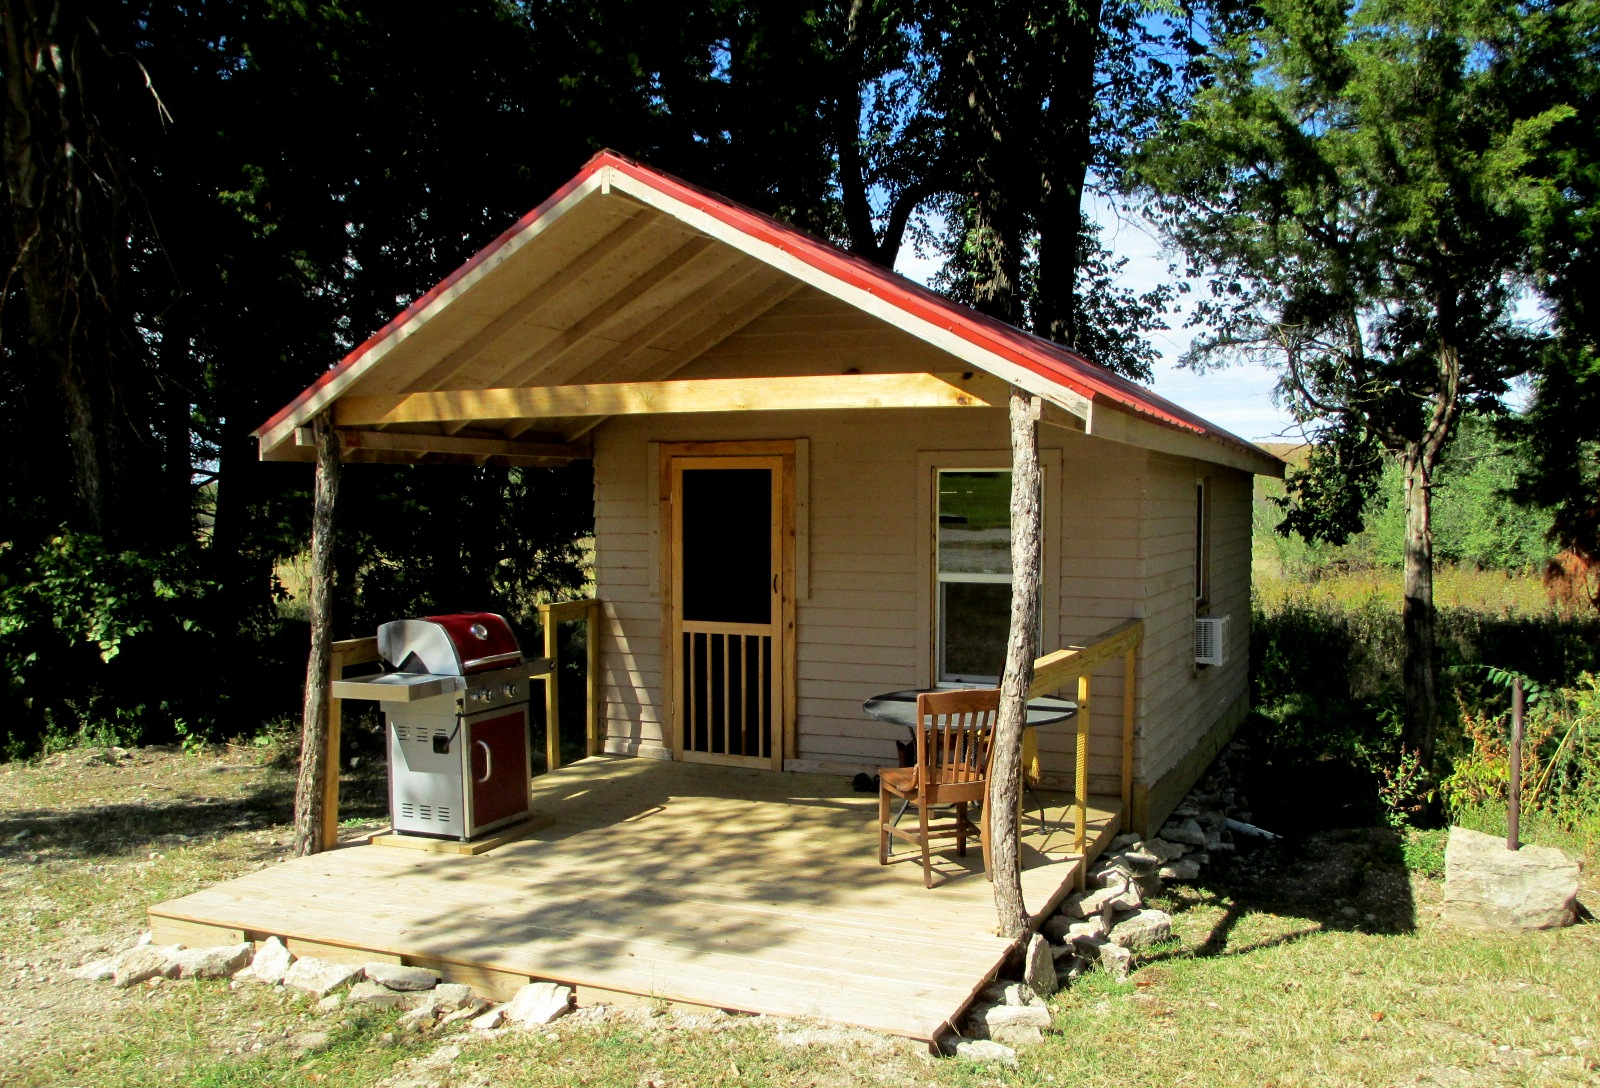 The Fire House at the Flying W Ranch